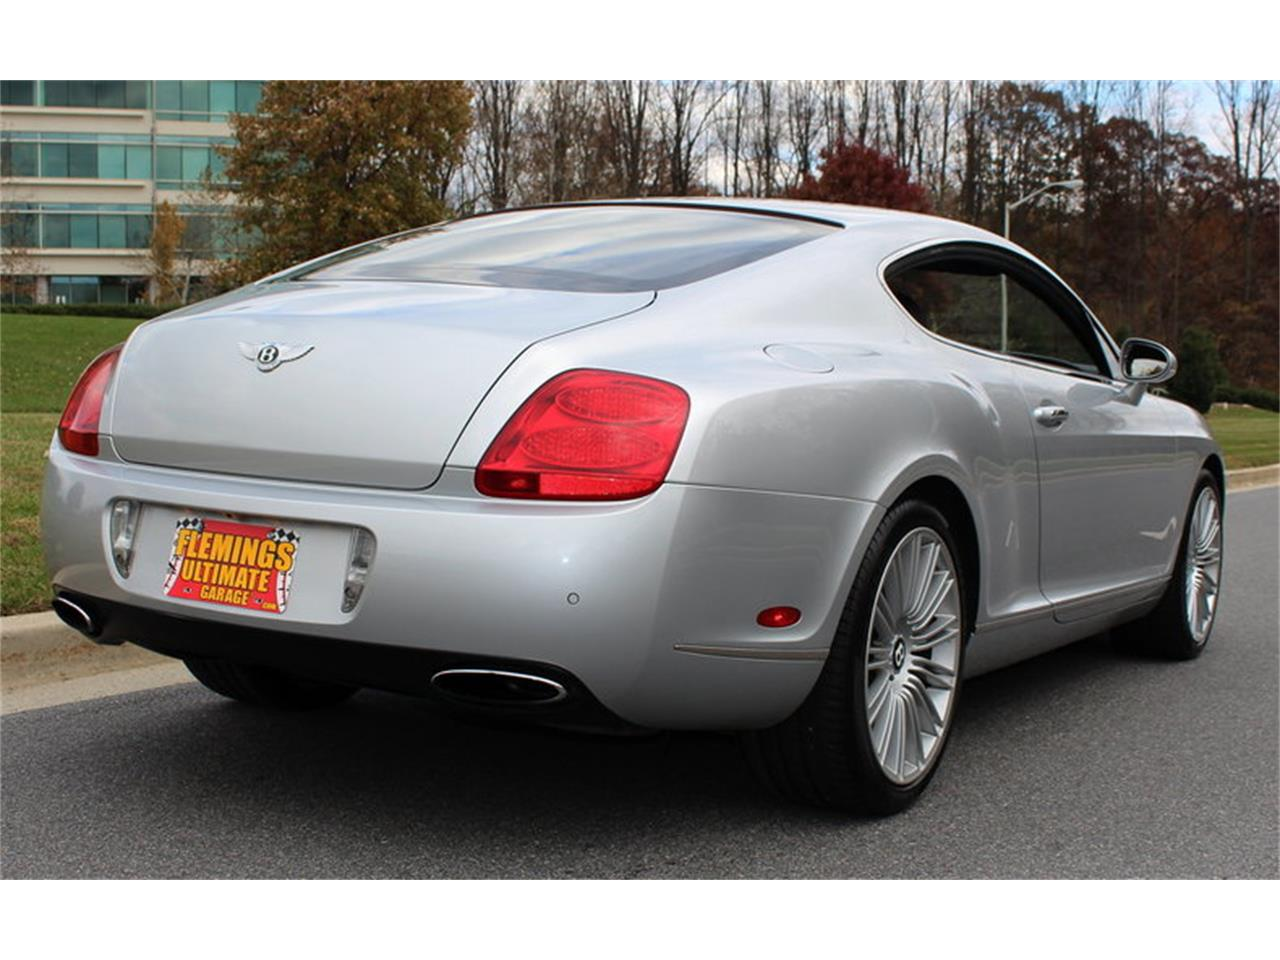 Large Picture of '08 Continental located in Rockville Maryland - $69,990.00 - MDEM